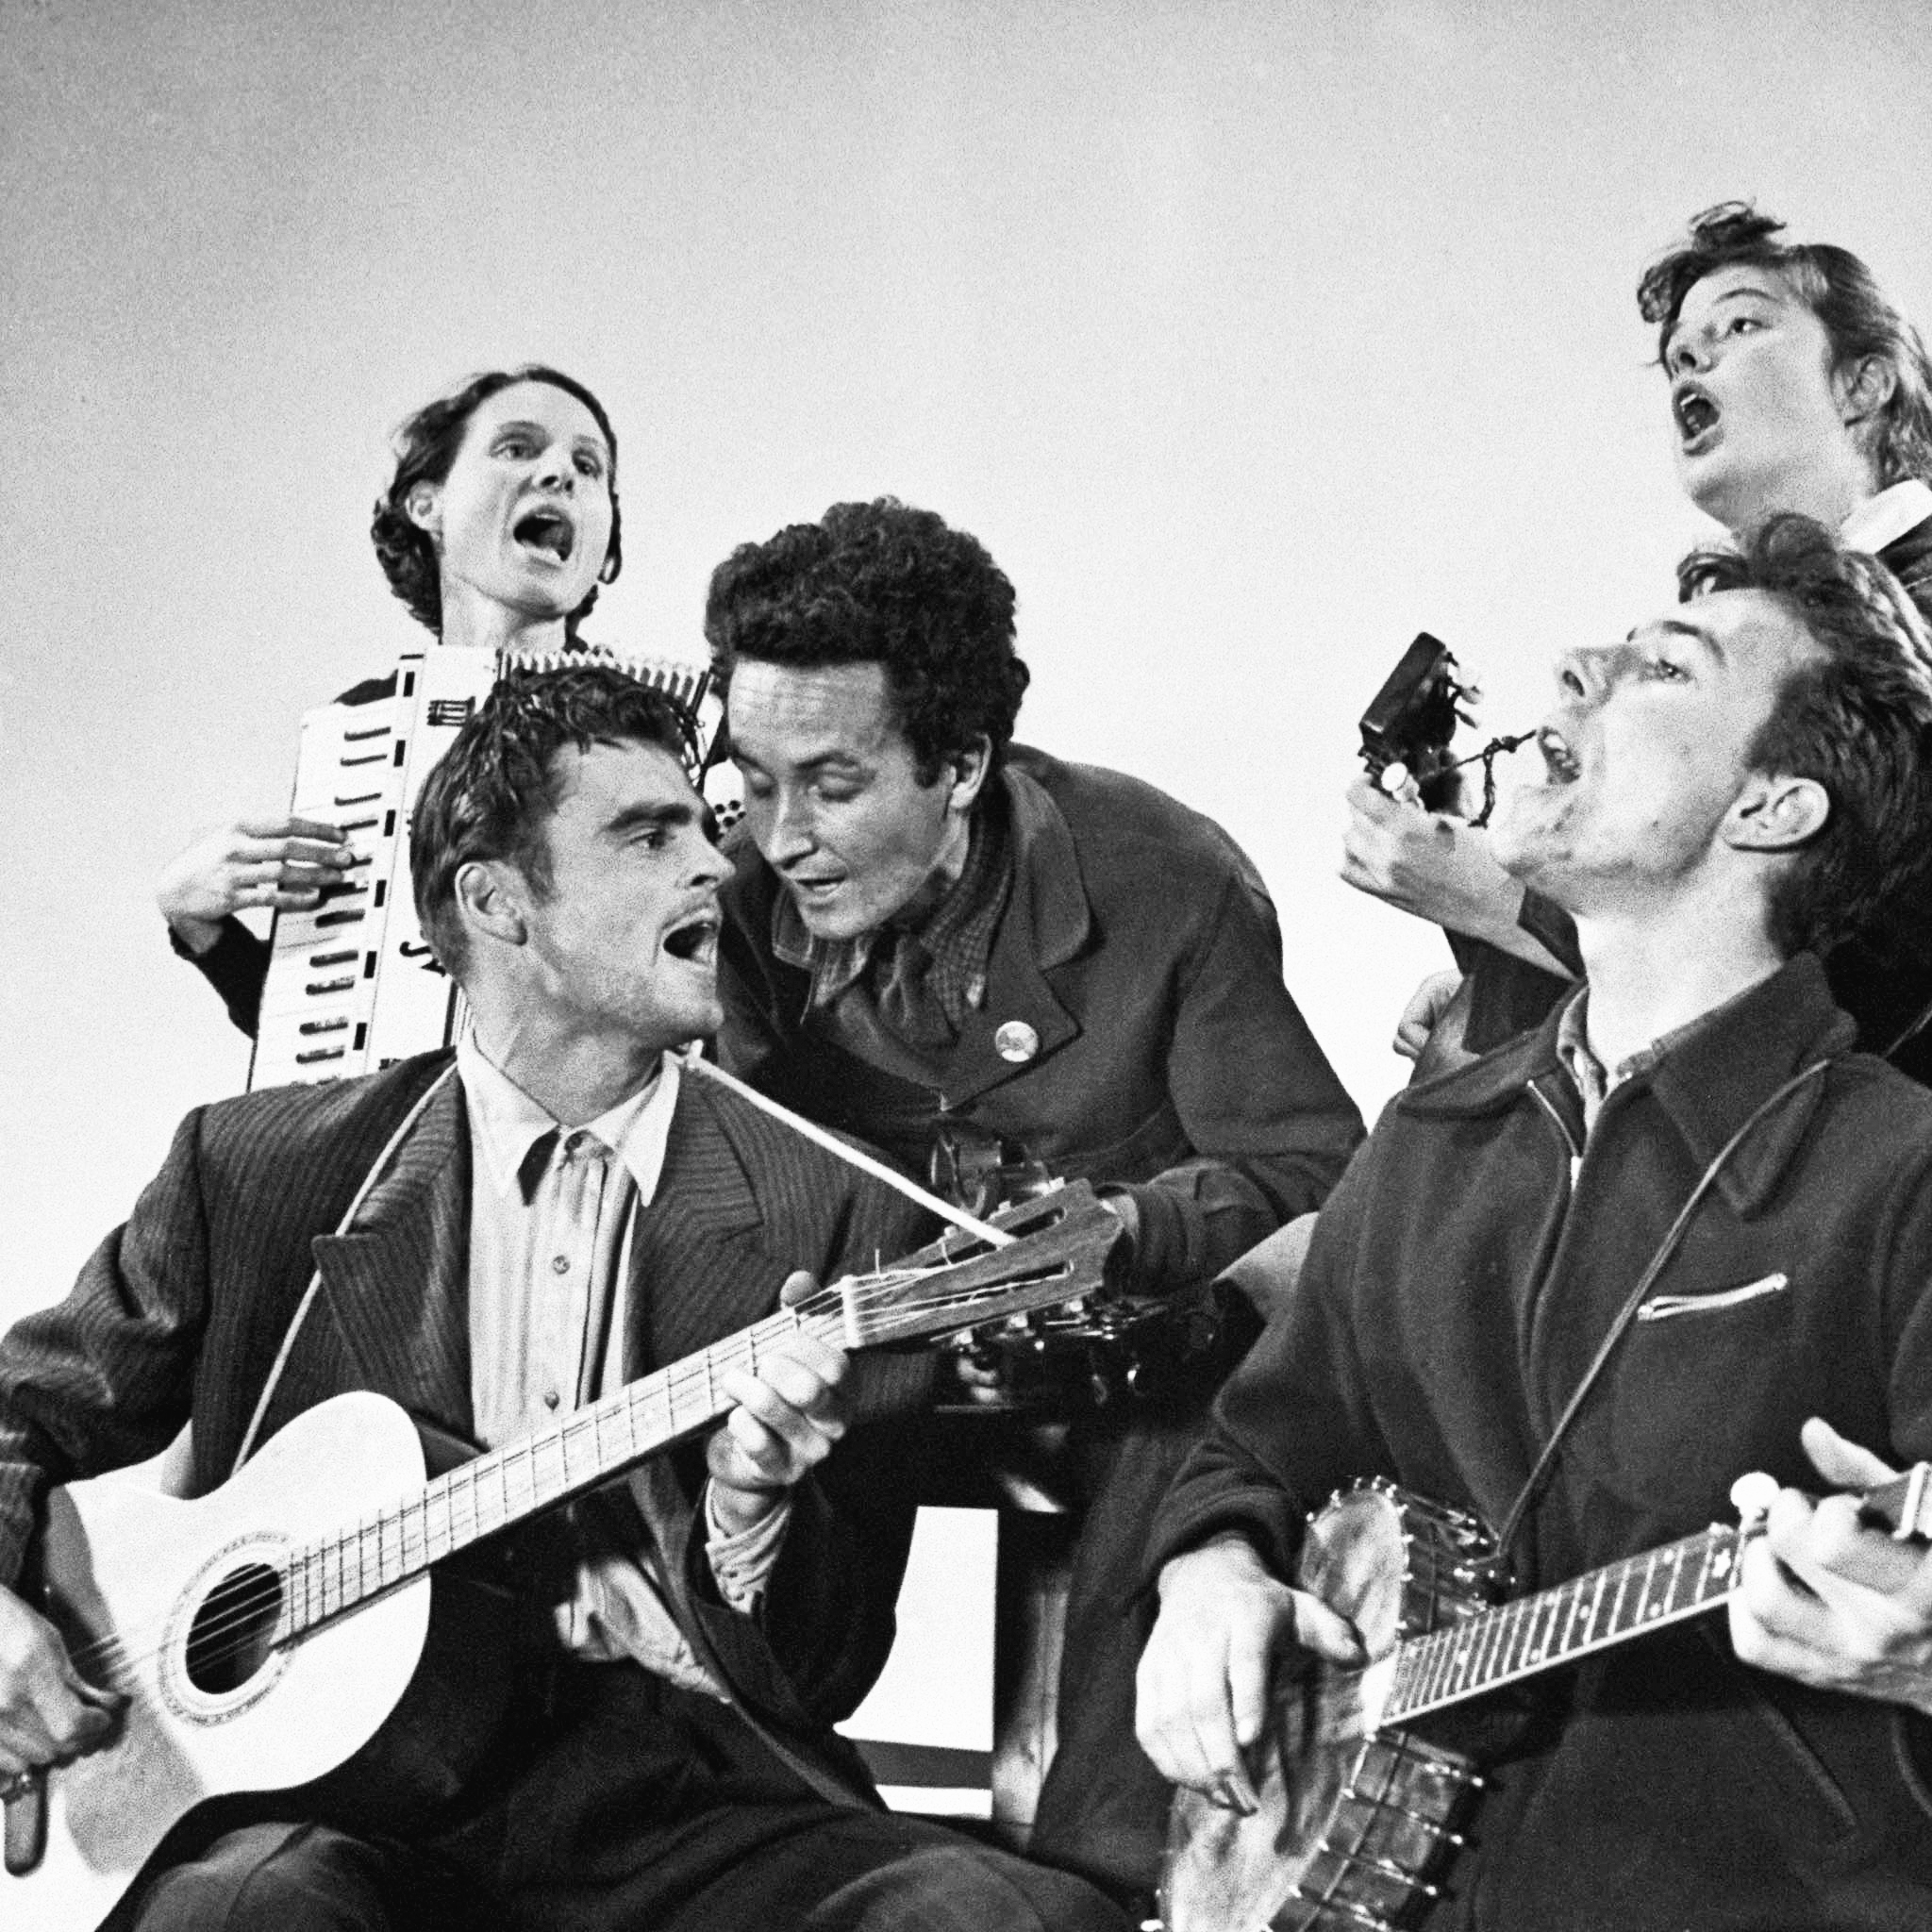 The Almanac Singers, Woody Guthrie (top center) and Pete Seeger (lower right) with Sis Cunningham, Cisco Houston, and Bess Lomax.